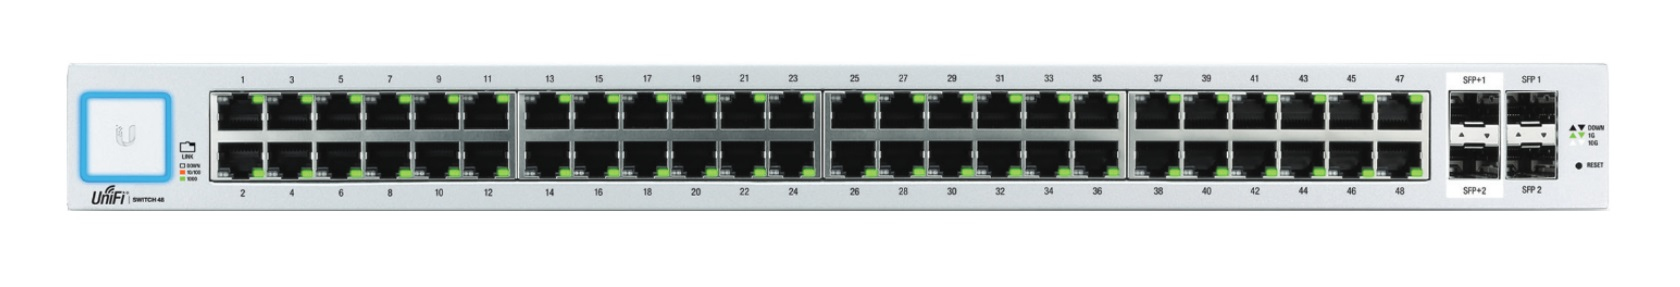 UBIQUITI NETWORKS US-48 UNIFI MANAGED NETWORK SWITCH GIGABIT ETHERNET 1U WHITE